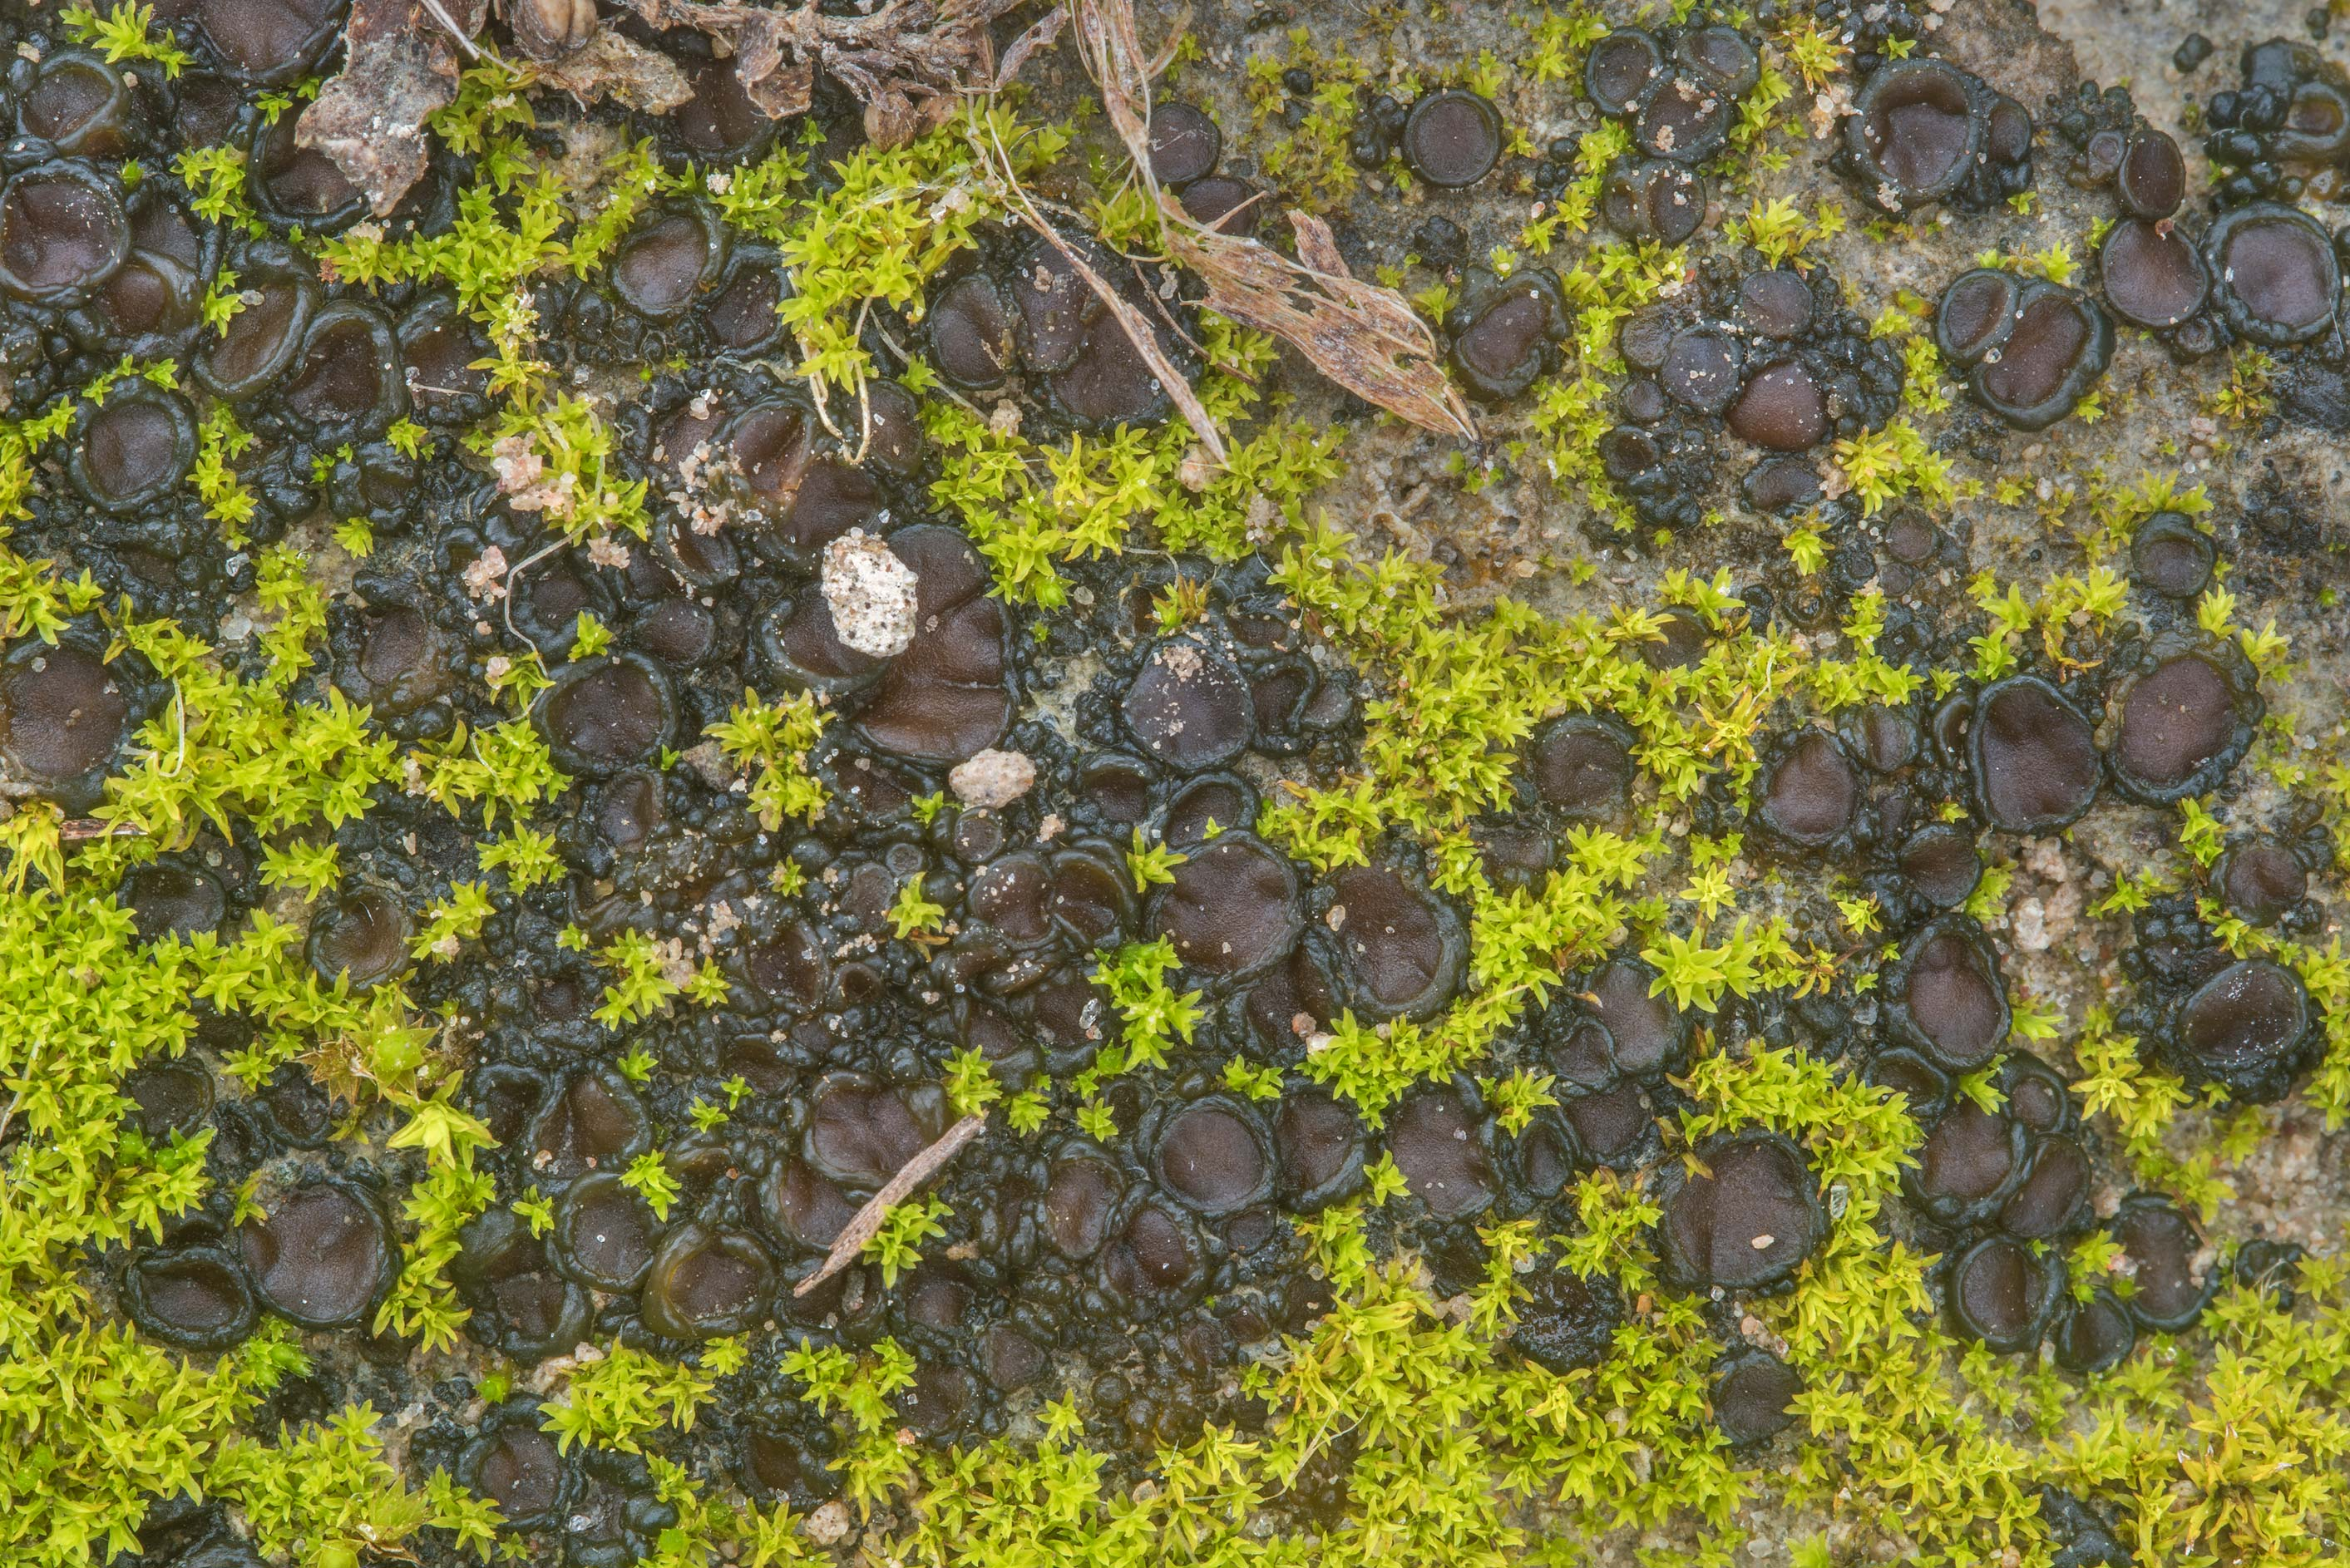 Tar-jelly lichen (Collema tenax) with moss on a...Ashburn St.. College Station, Texas